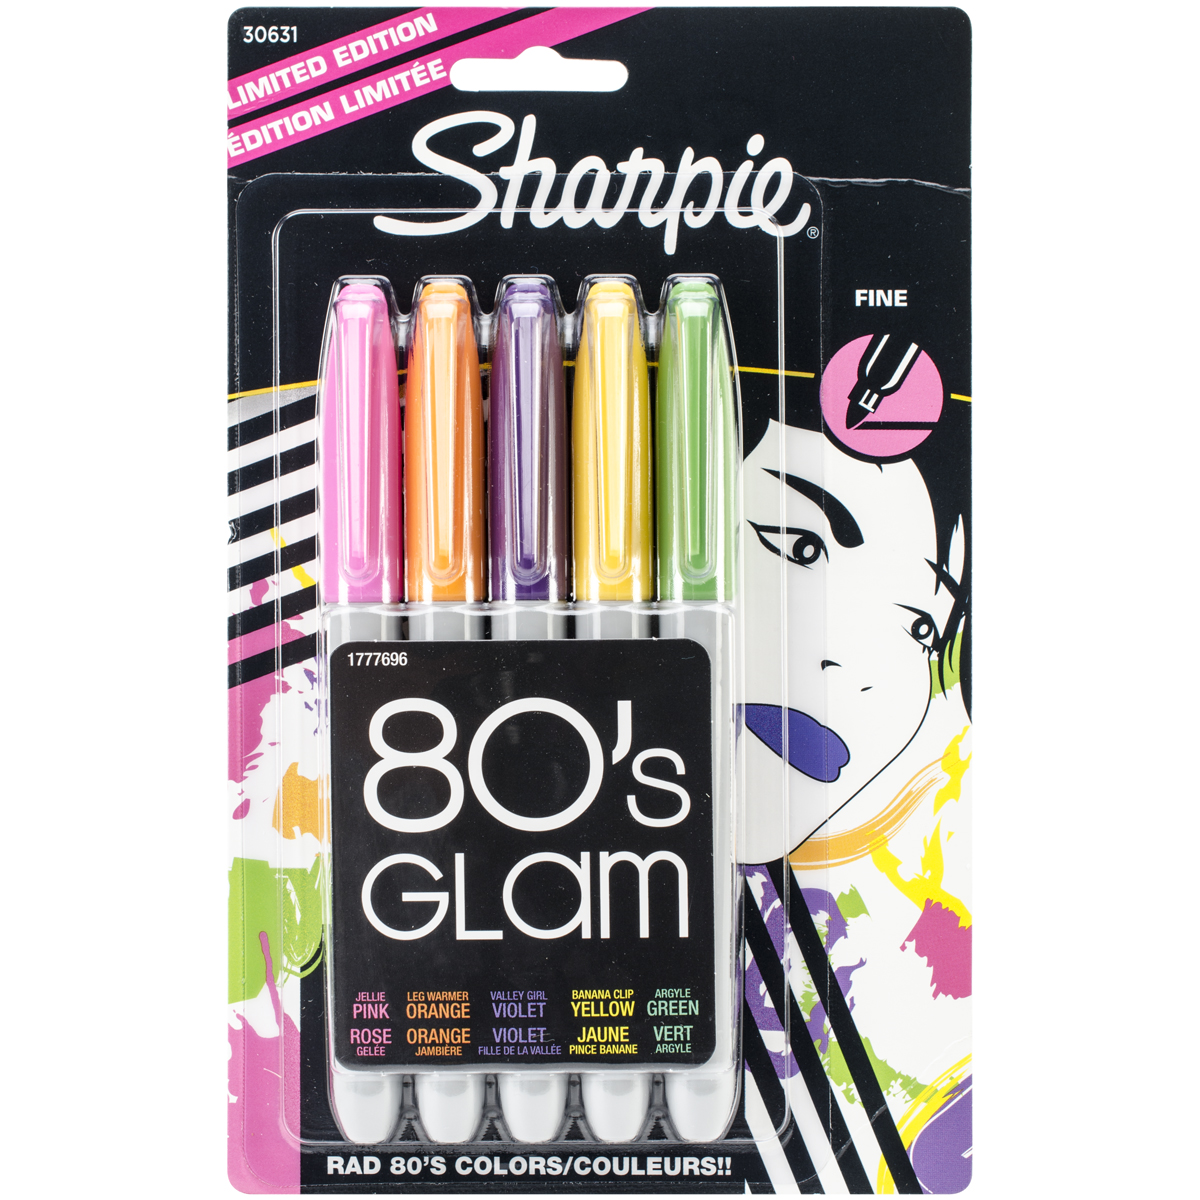 Sharpie Original Permanent Marker, Fine Tip, Fashion, 5ct